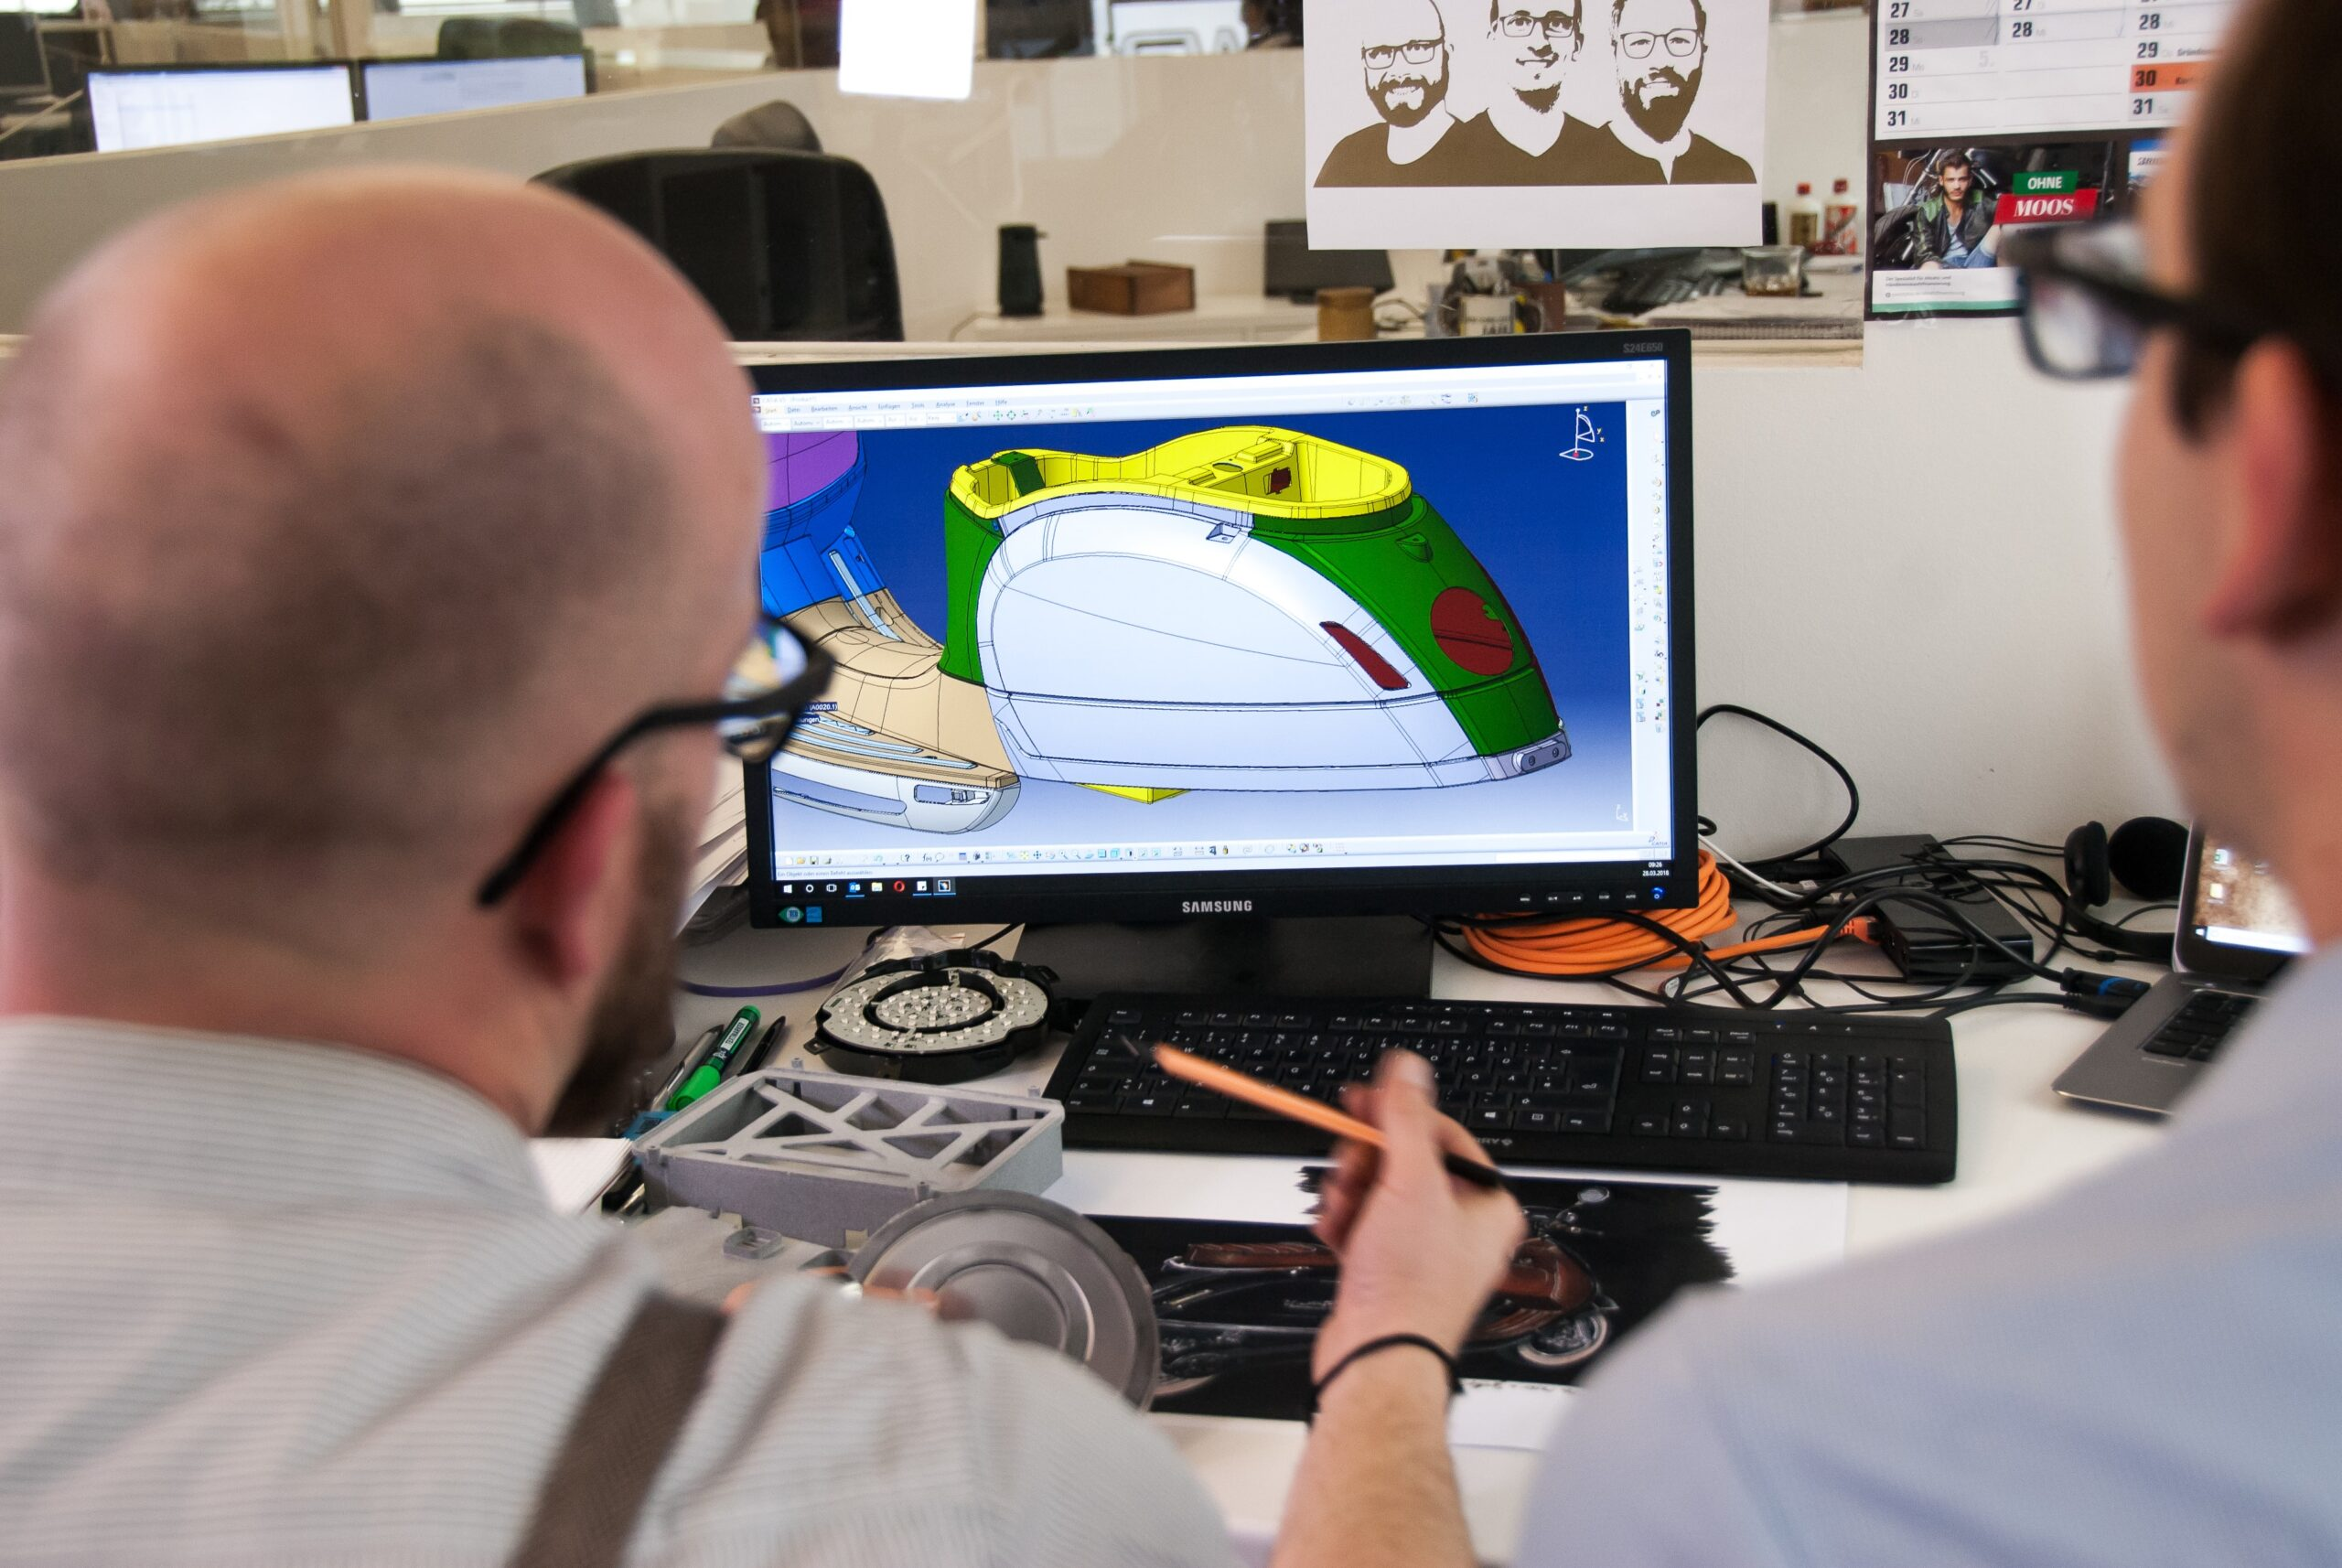 two people looking at a CAD software